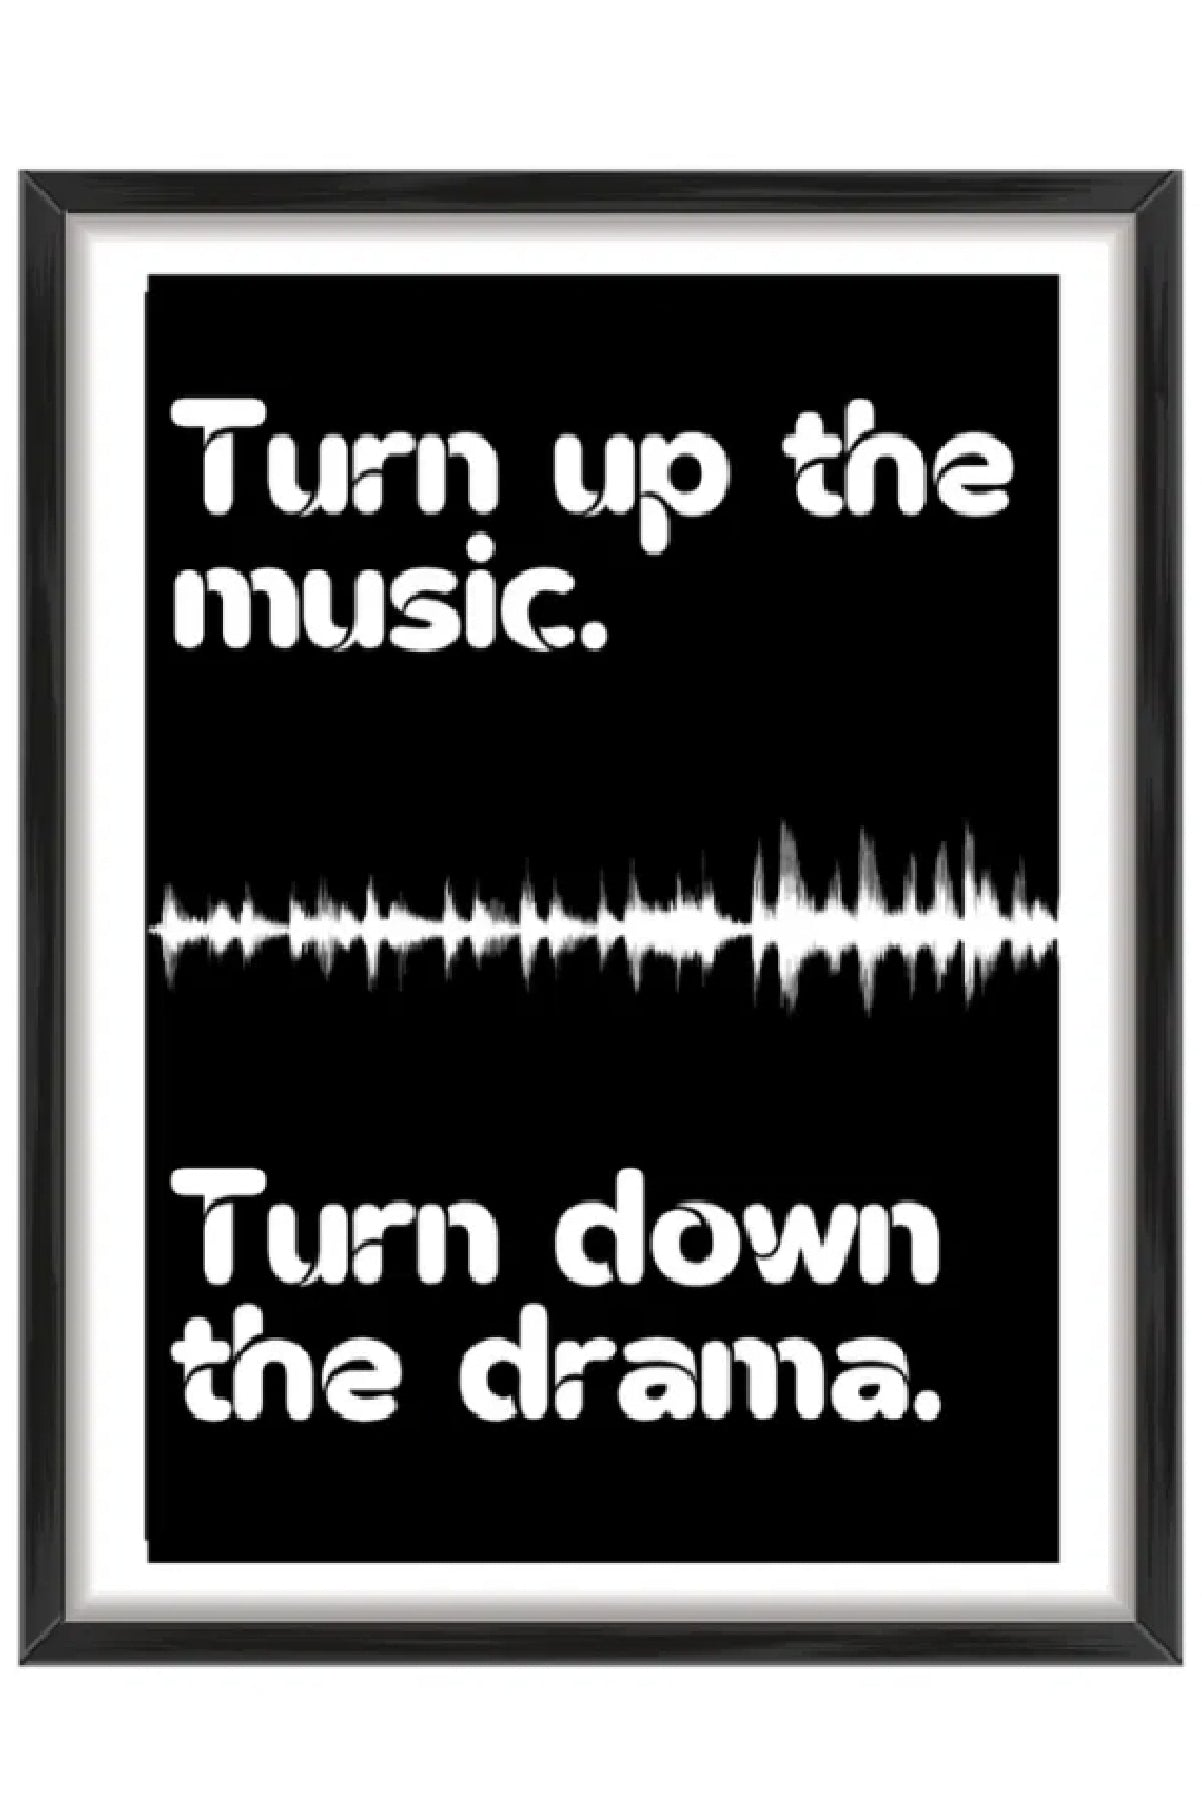 Turn up the music print